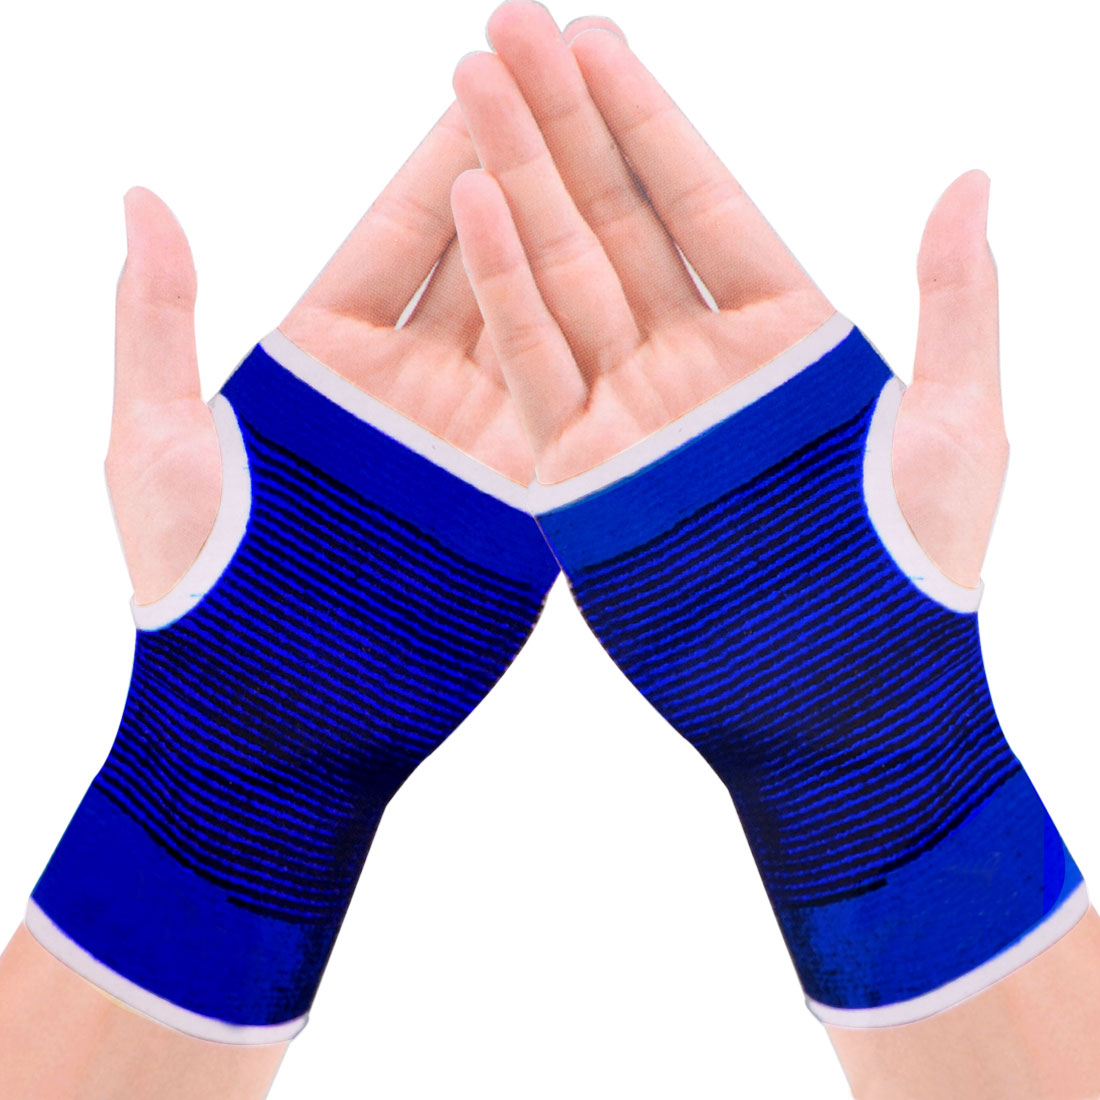 Unique Bargains Lady Blue Black Striped Stretchy Knitting Thumbhole Wrist Warmer Gloves